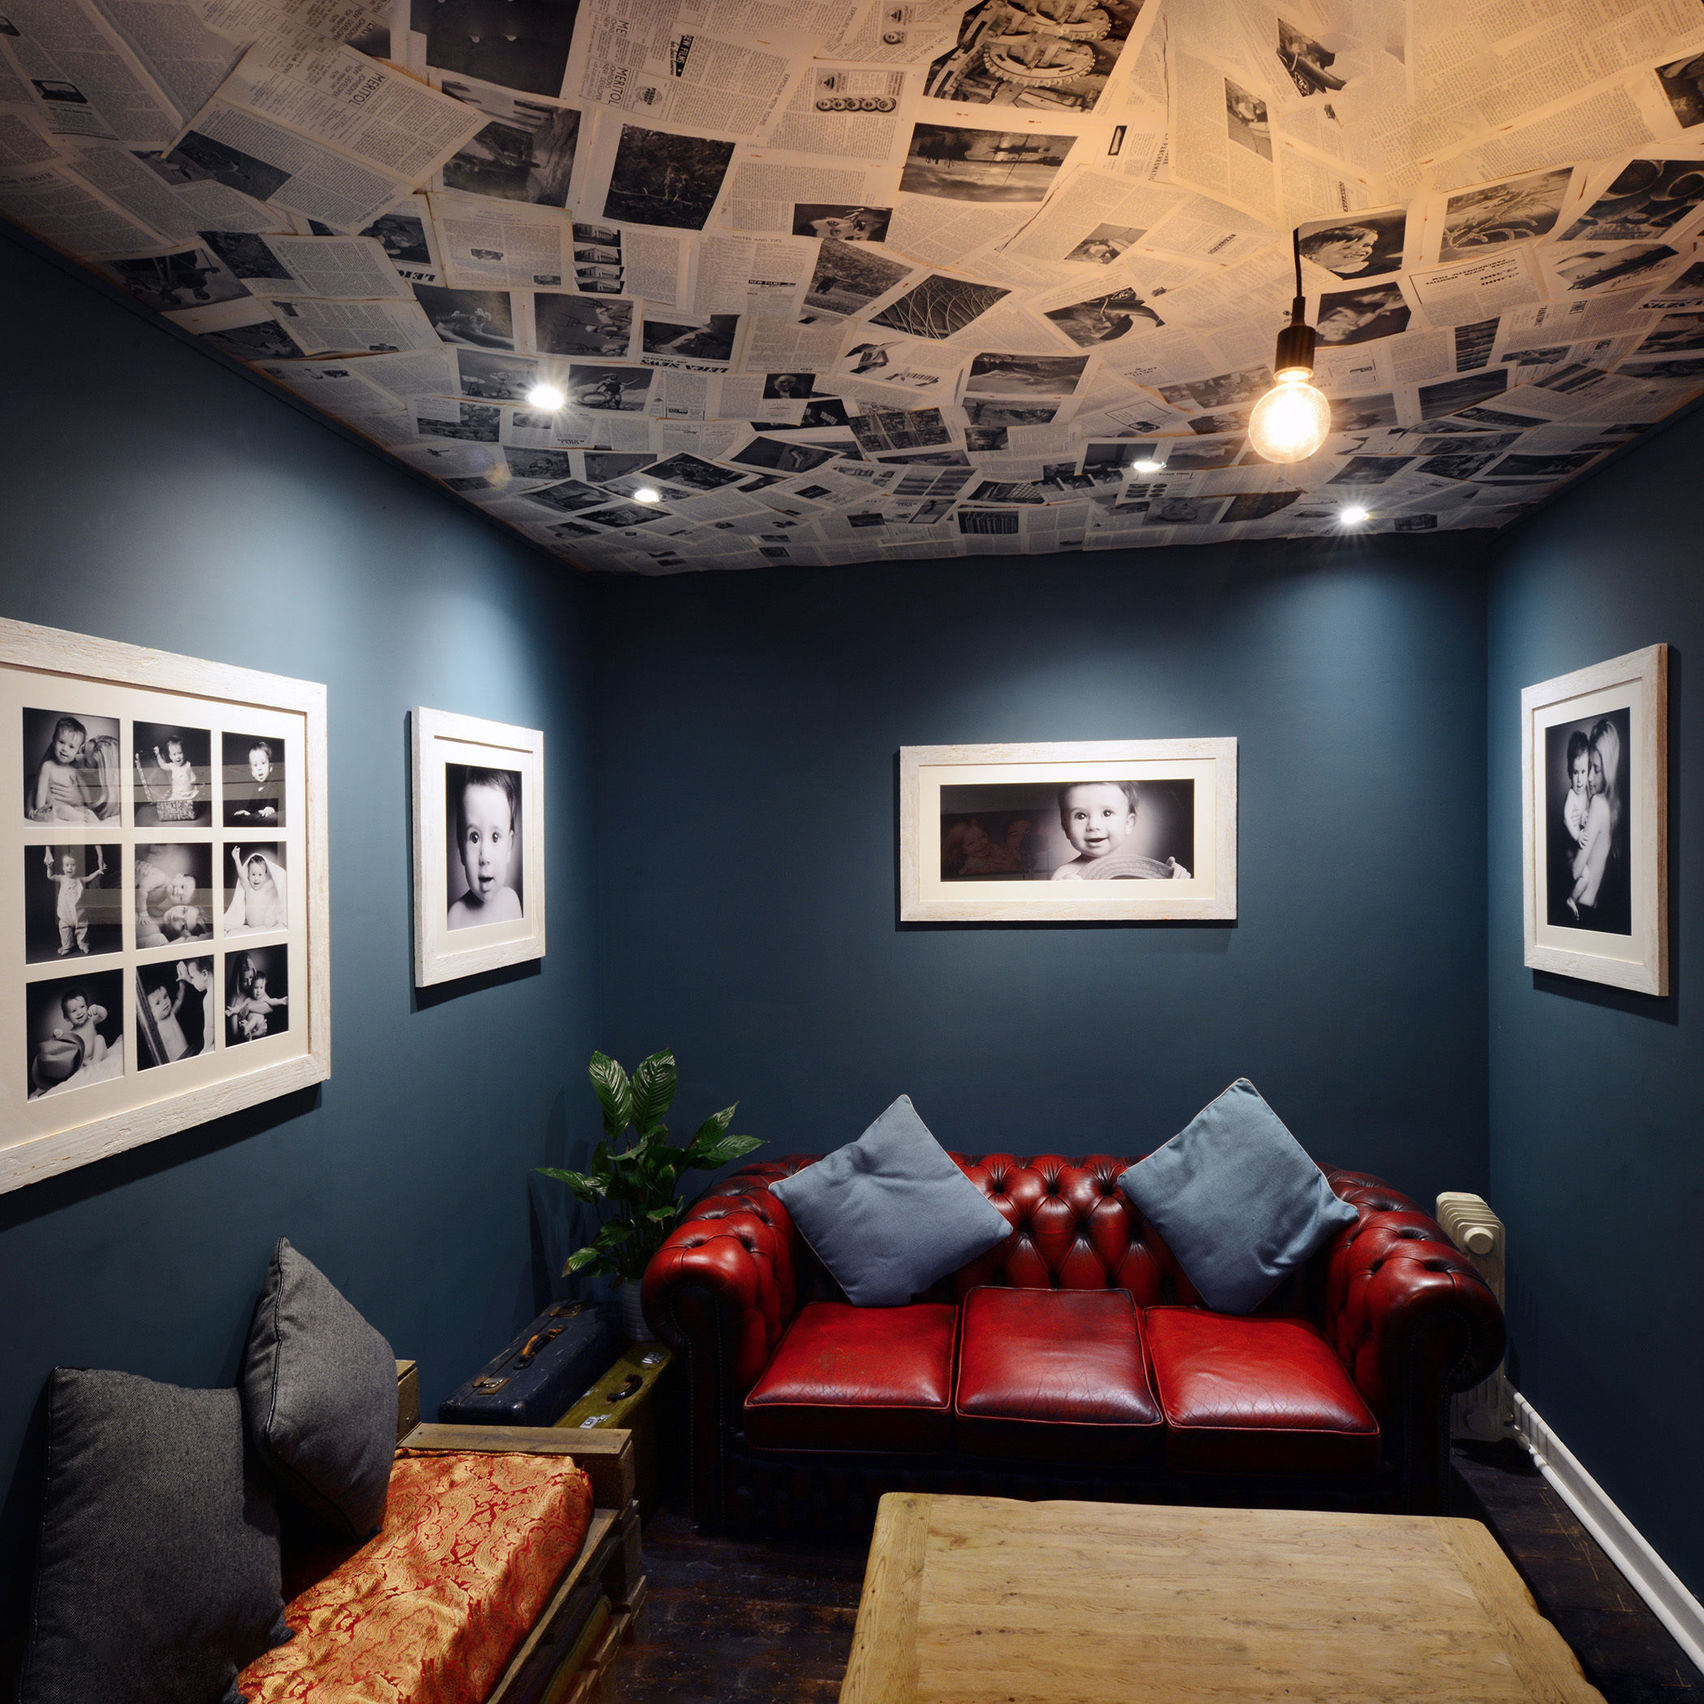 State-of-the-art Photography Studio with lounge, Zzzone Photography Studio